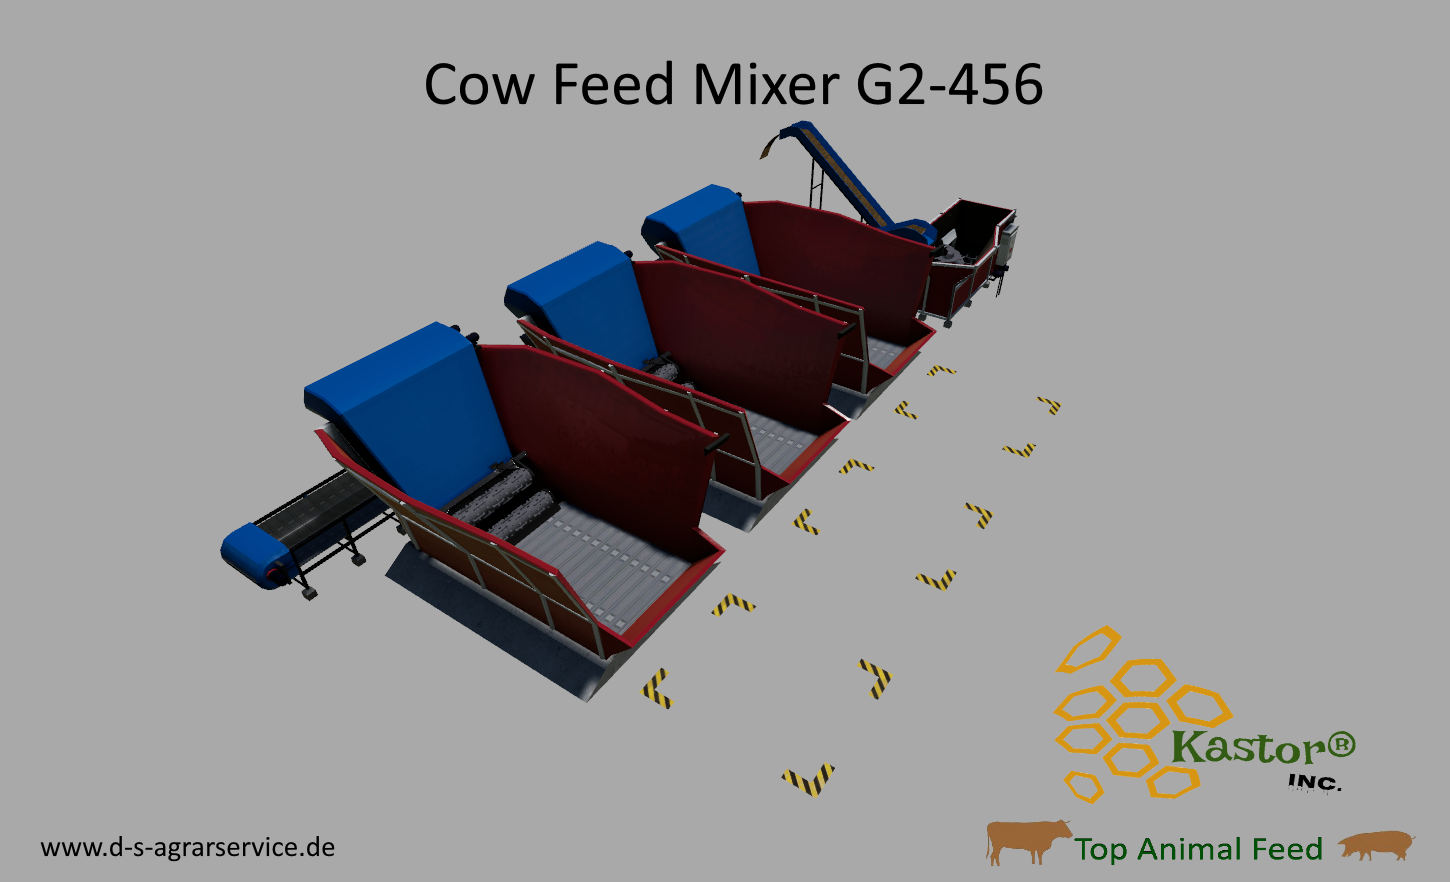 LS19# Global Company - Feed Mixer G2-456 By Kastor Inc  v1 0 0 0